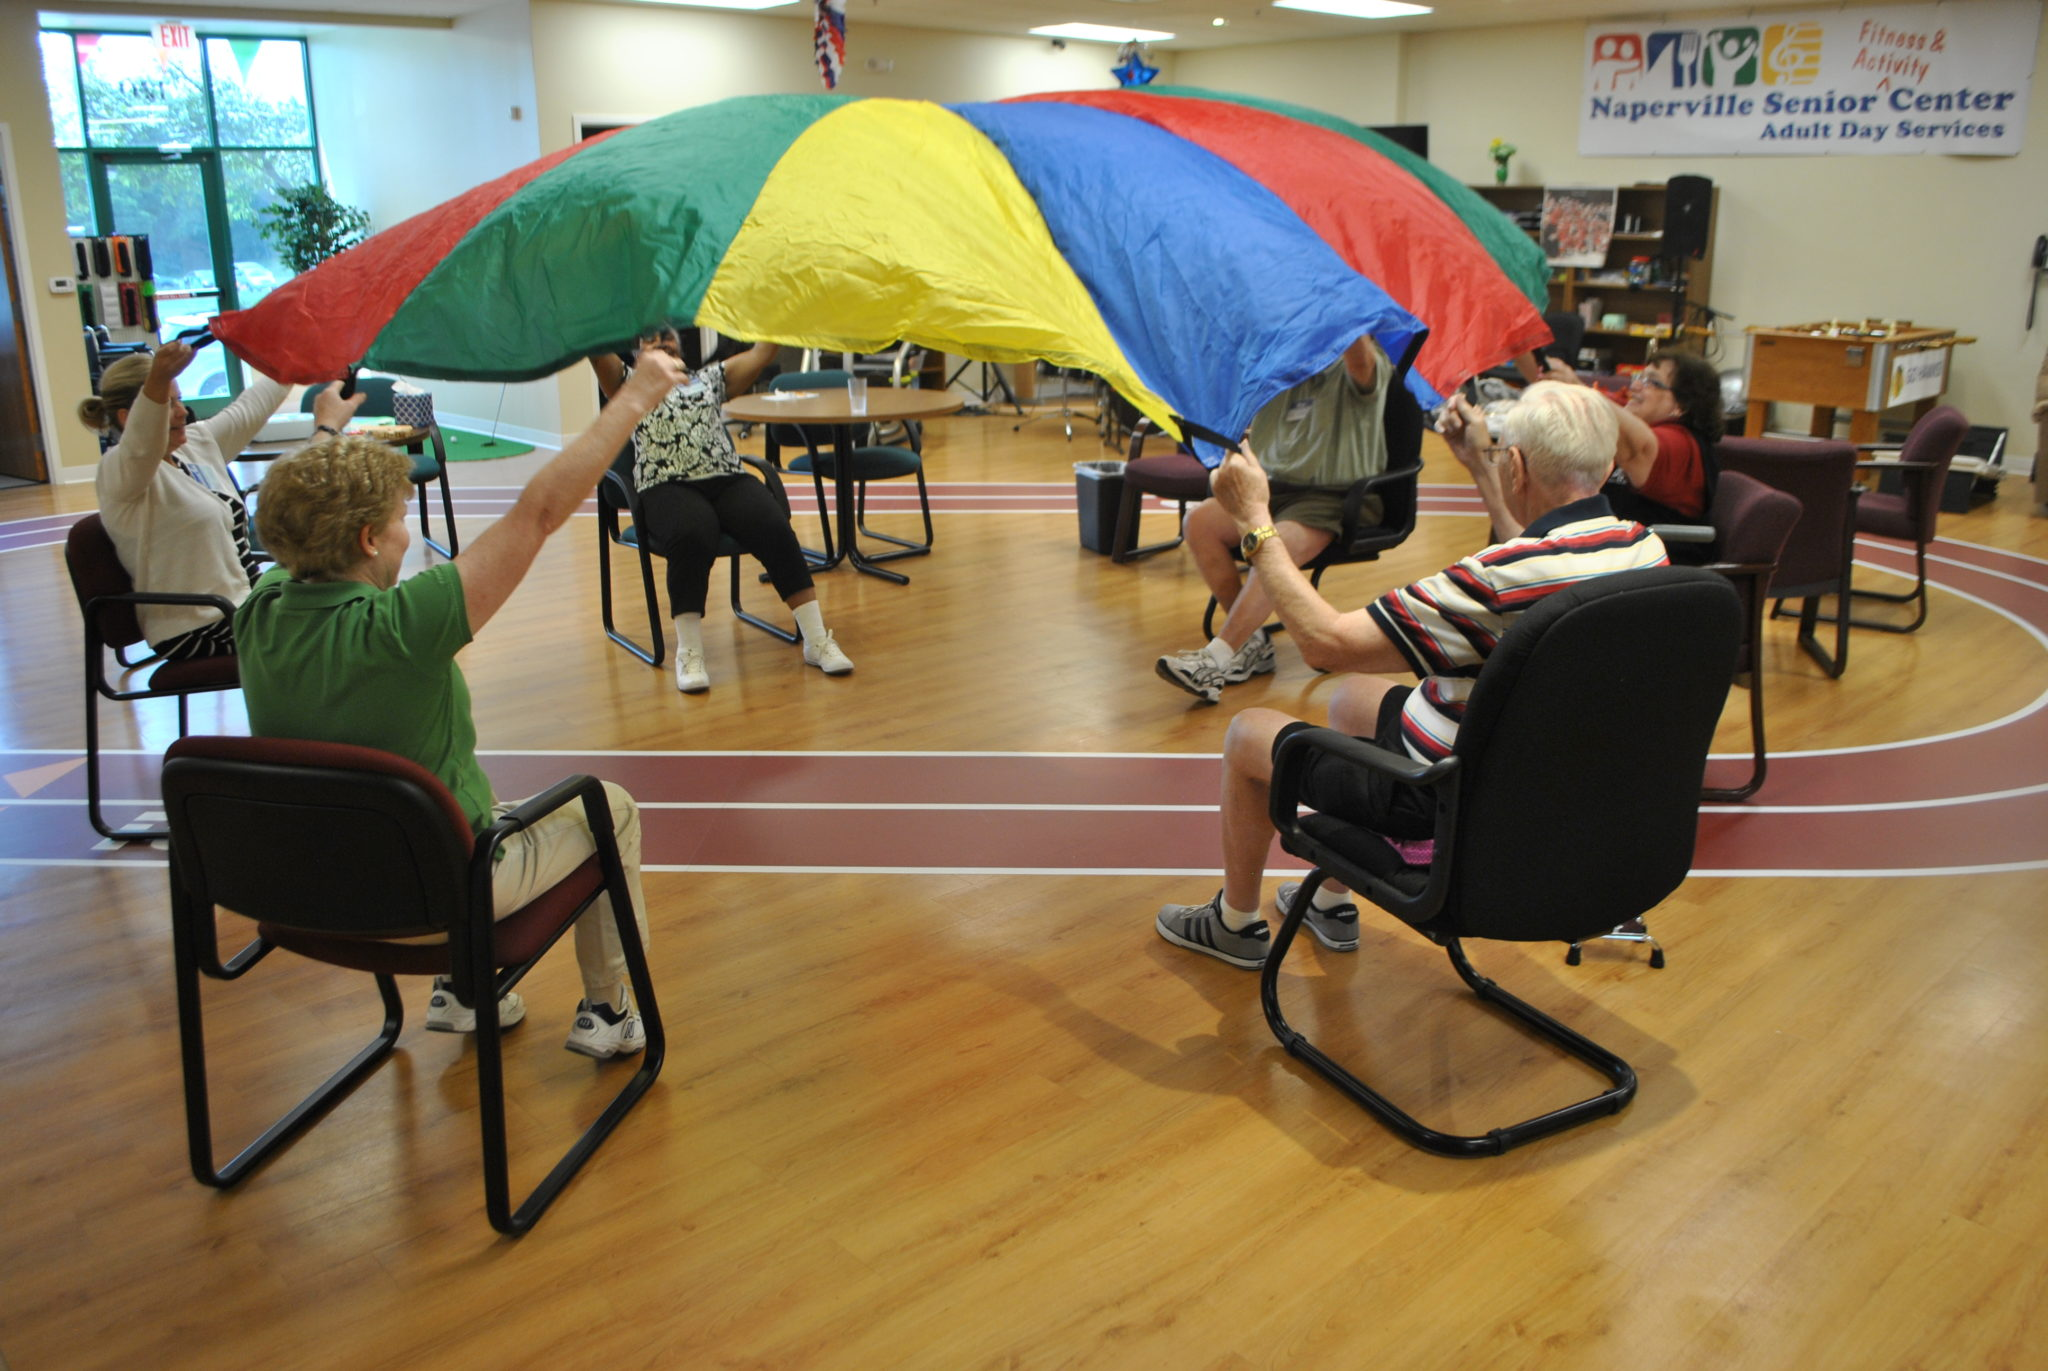 Free Trial Offer Adult Day Care Naperville Senior Center